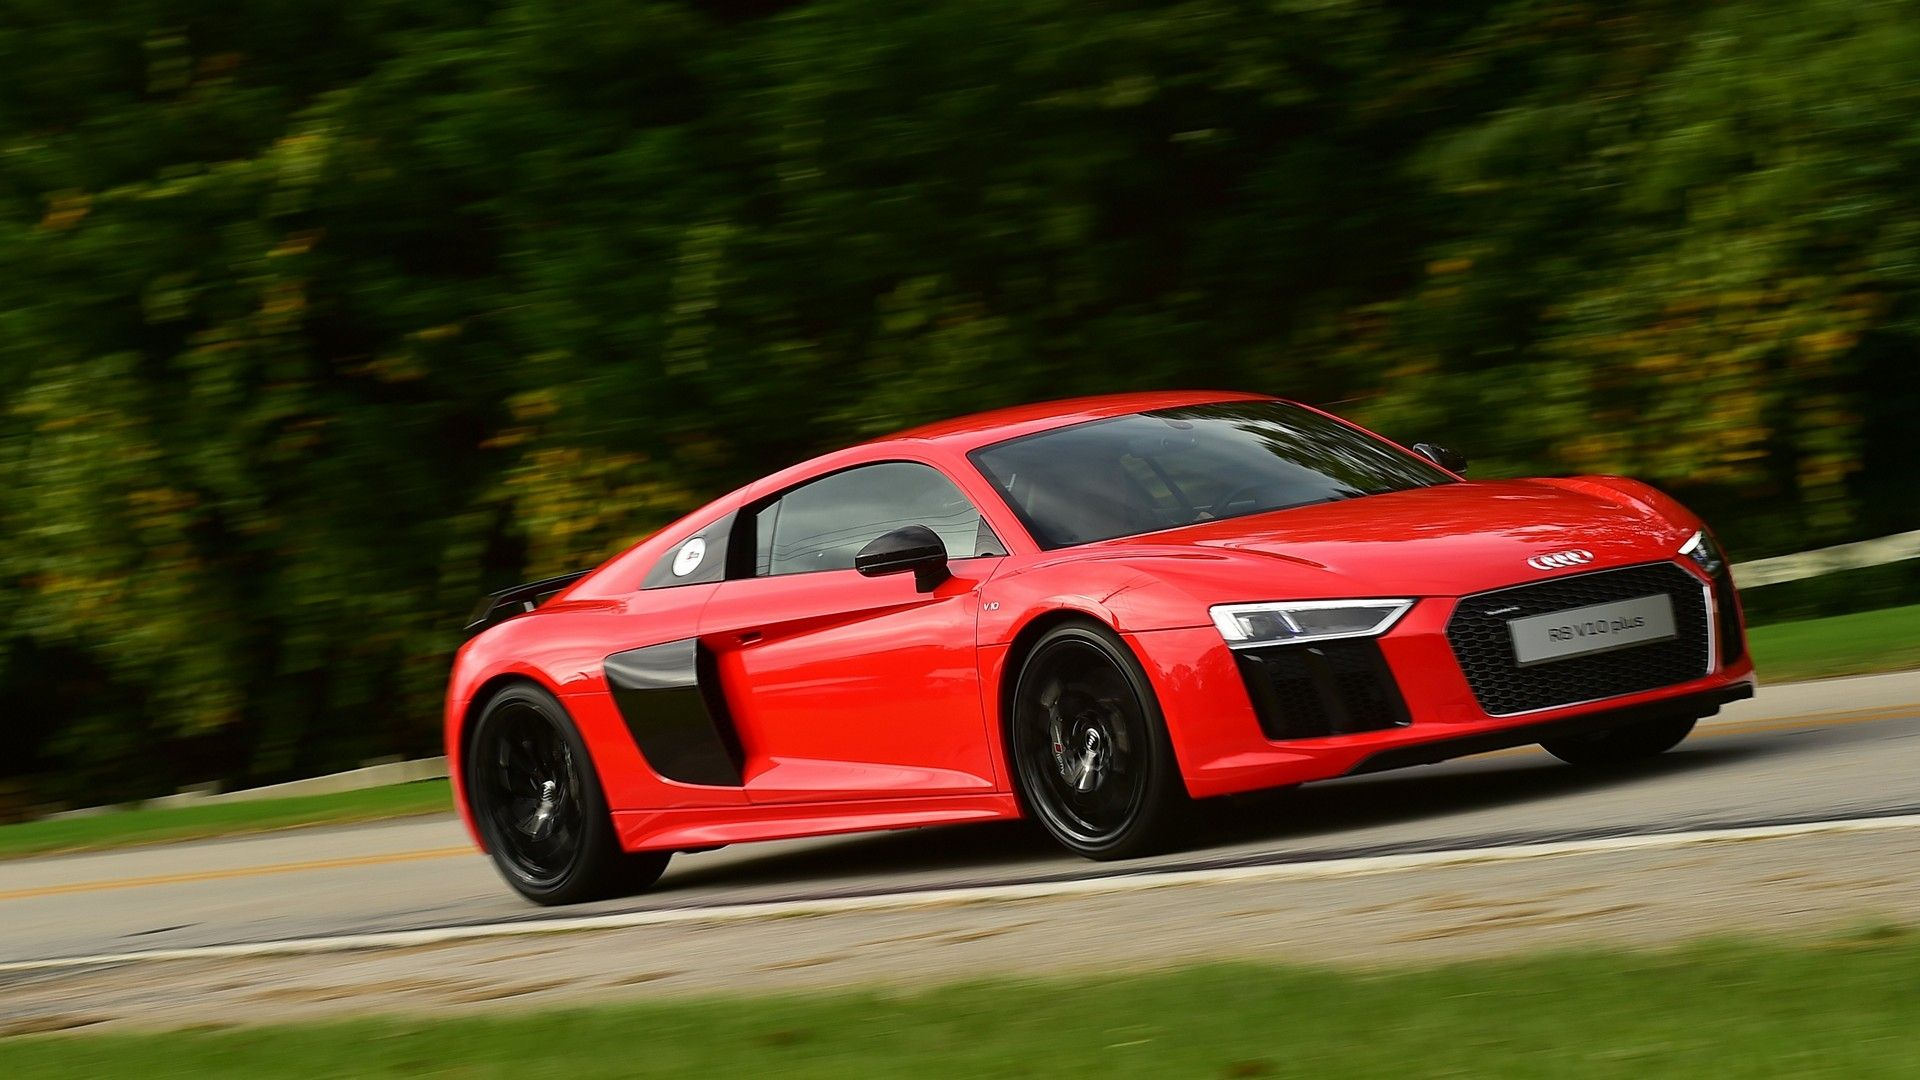 Mtm tuning audi r8 v10 plus supercars red r8 2017 cars audi cars wallpapers pinterest supercars